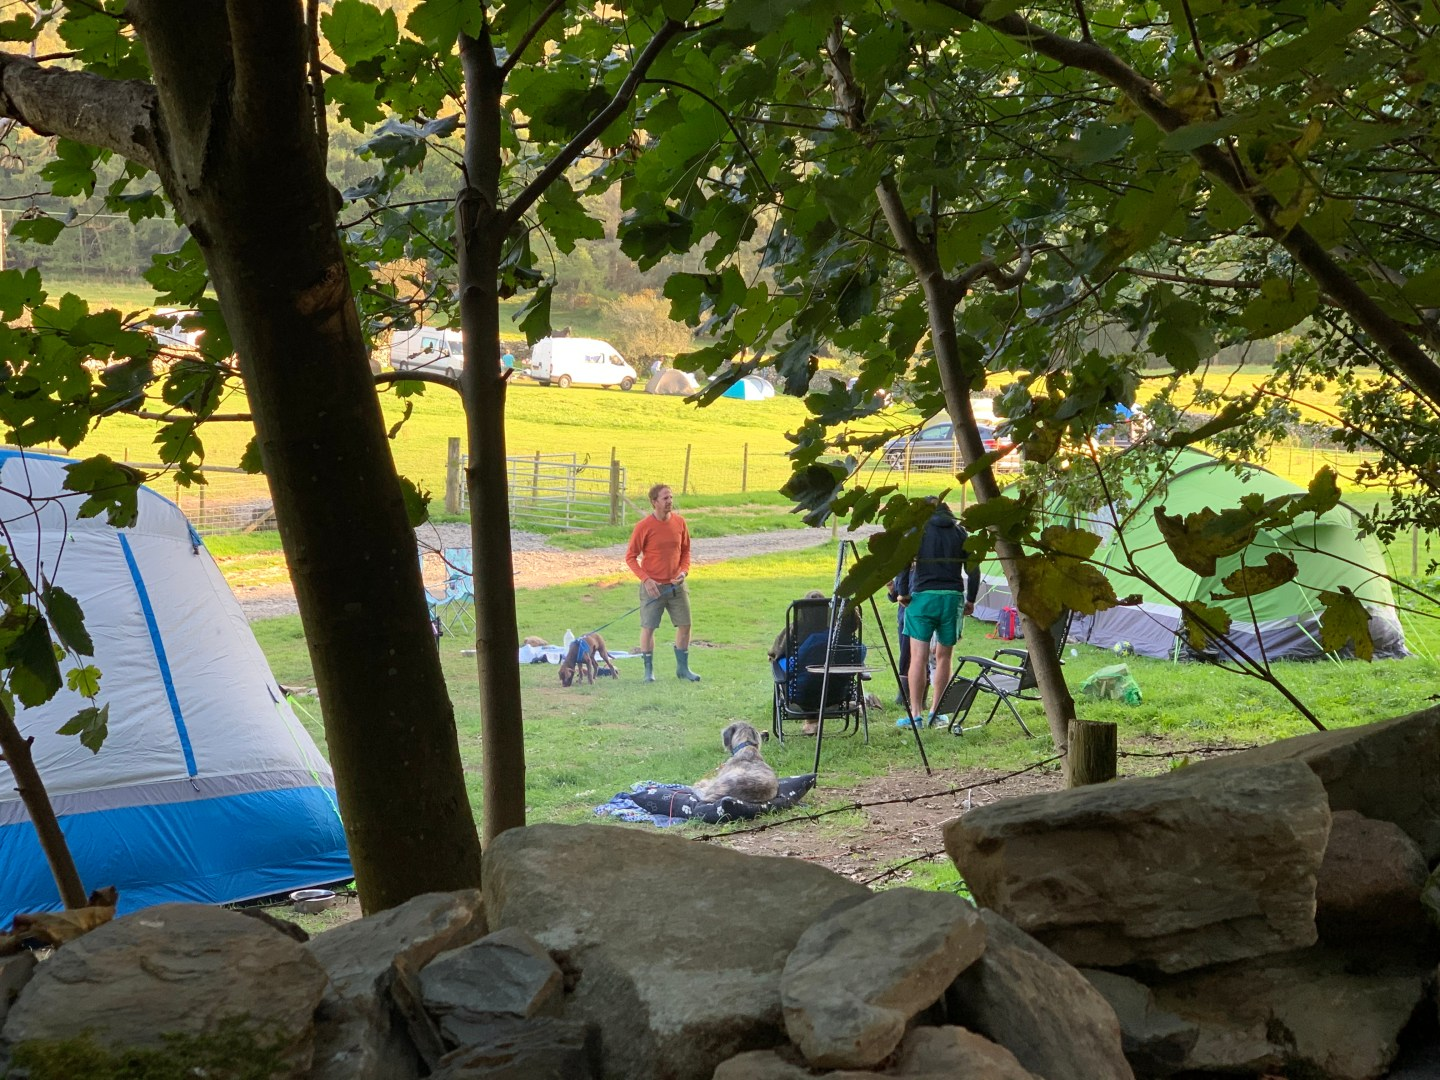 Dog friendly campsites in the UK